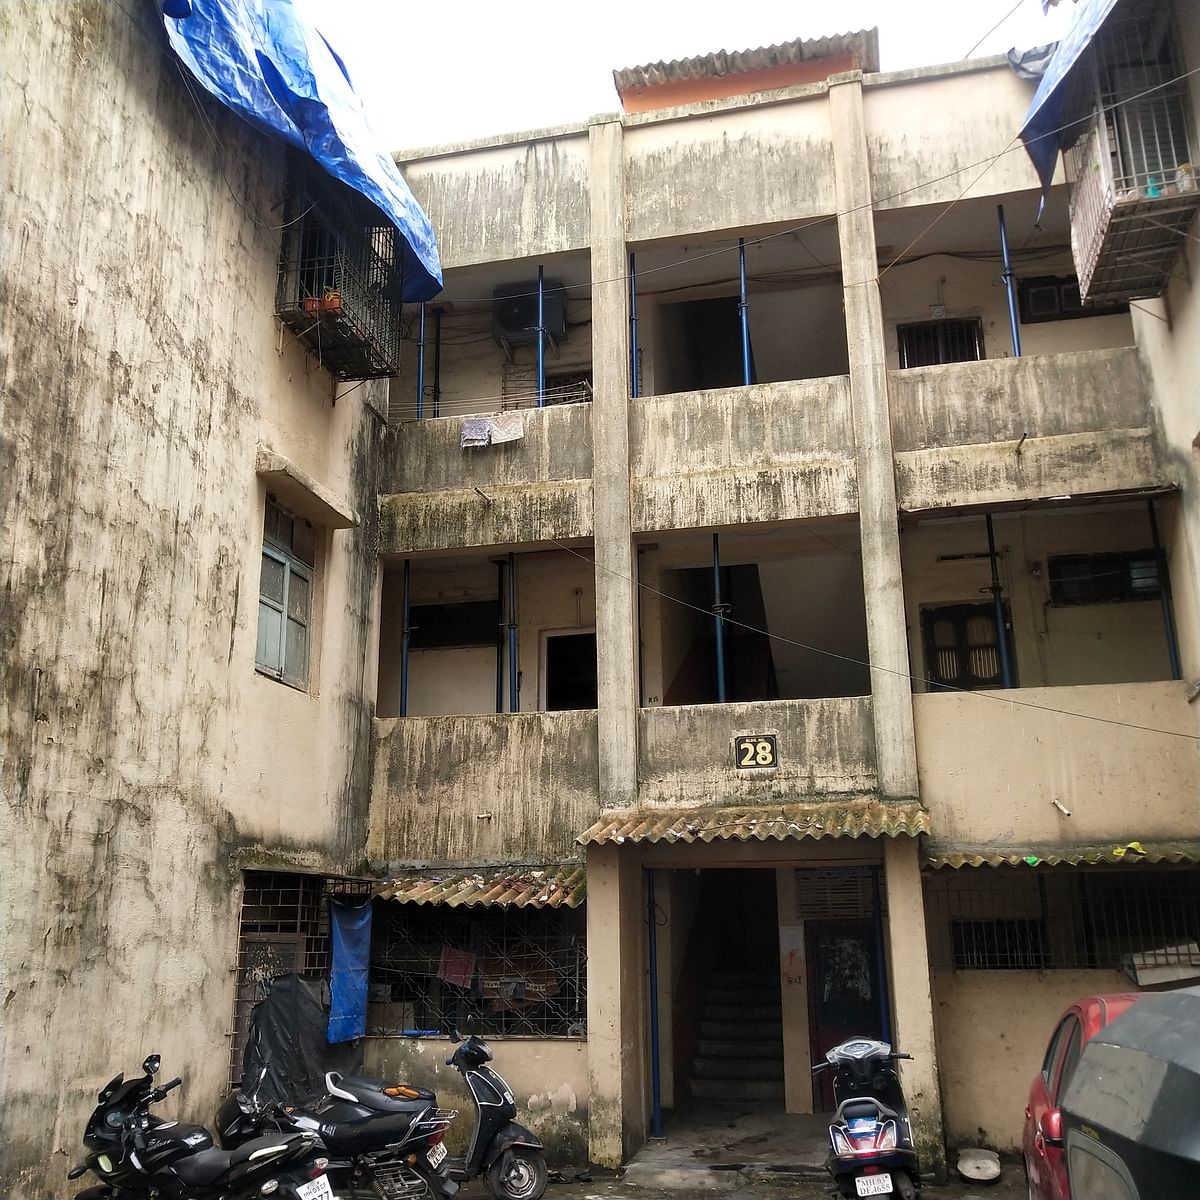 Buildings on the Brink: 60 years after moving in, residents of BMC-owned flats at at Vikroli Parksite fear homelessness